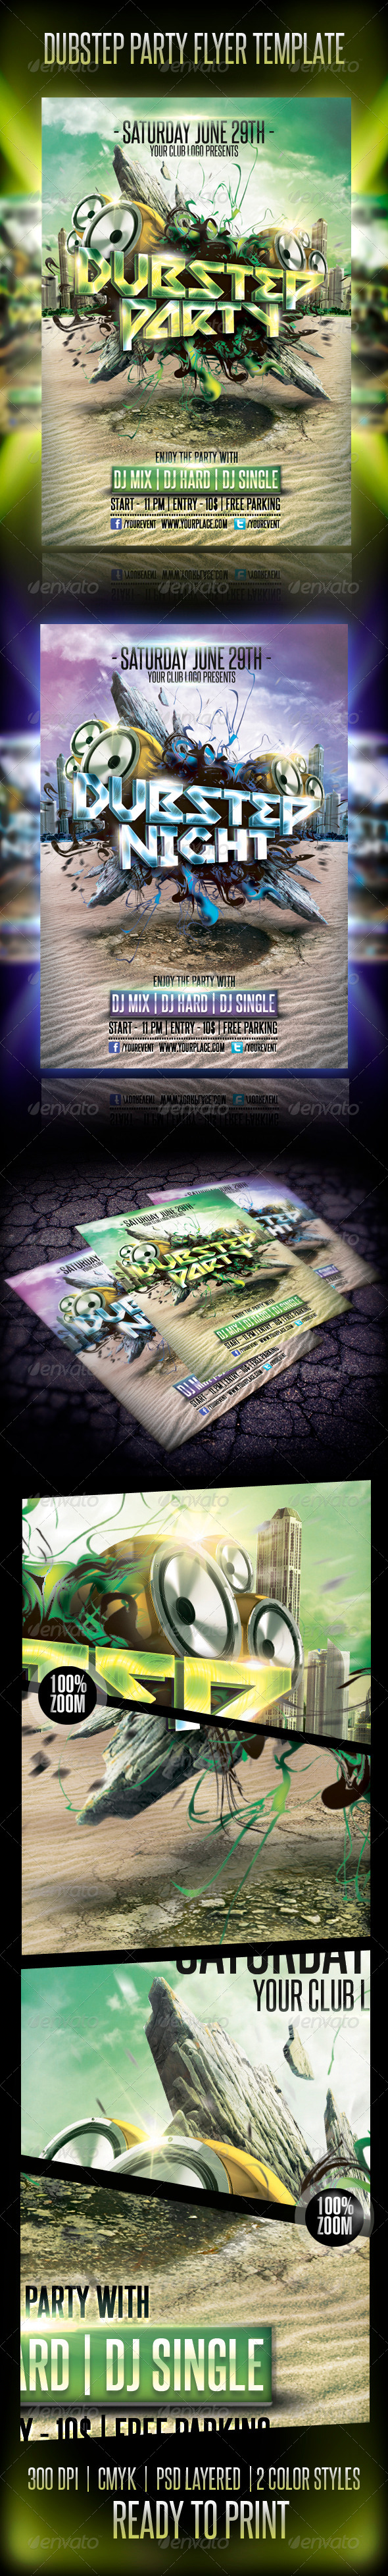 GraphicRiver Dubstep Party Flyer Template 4981864